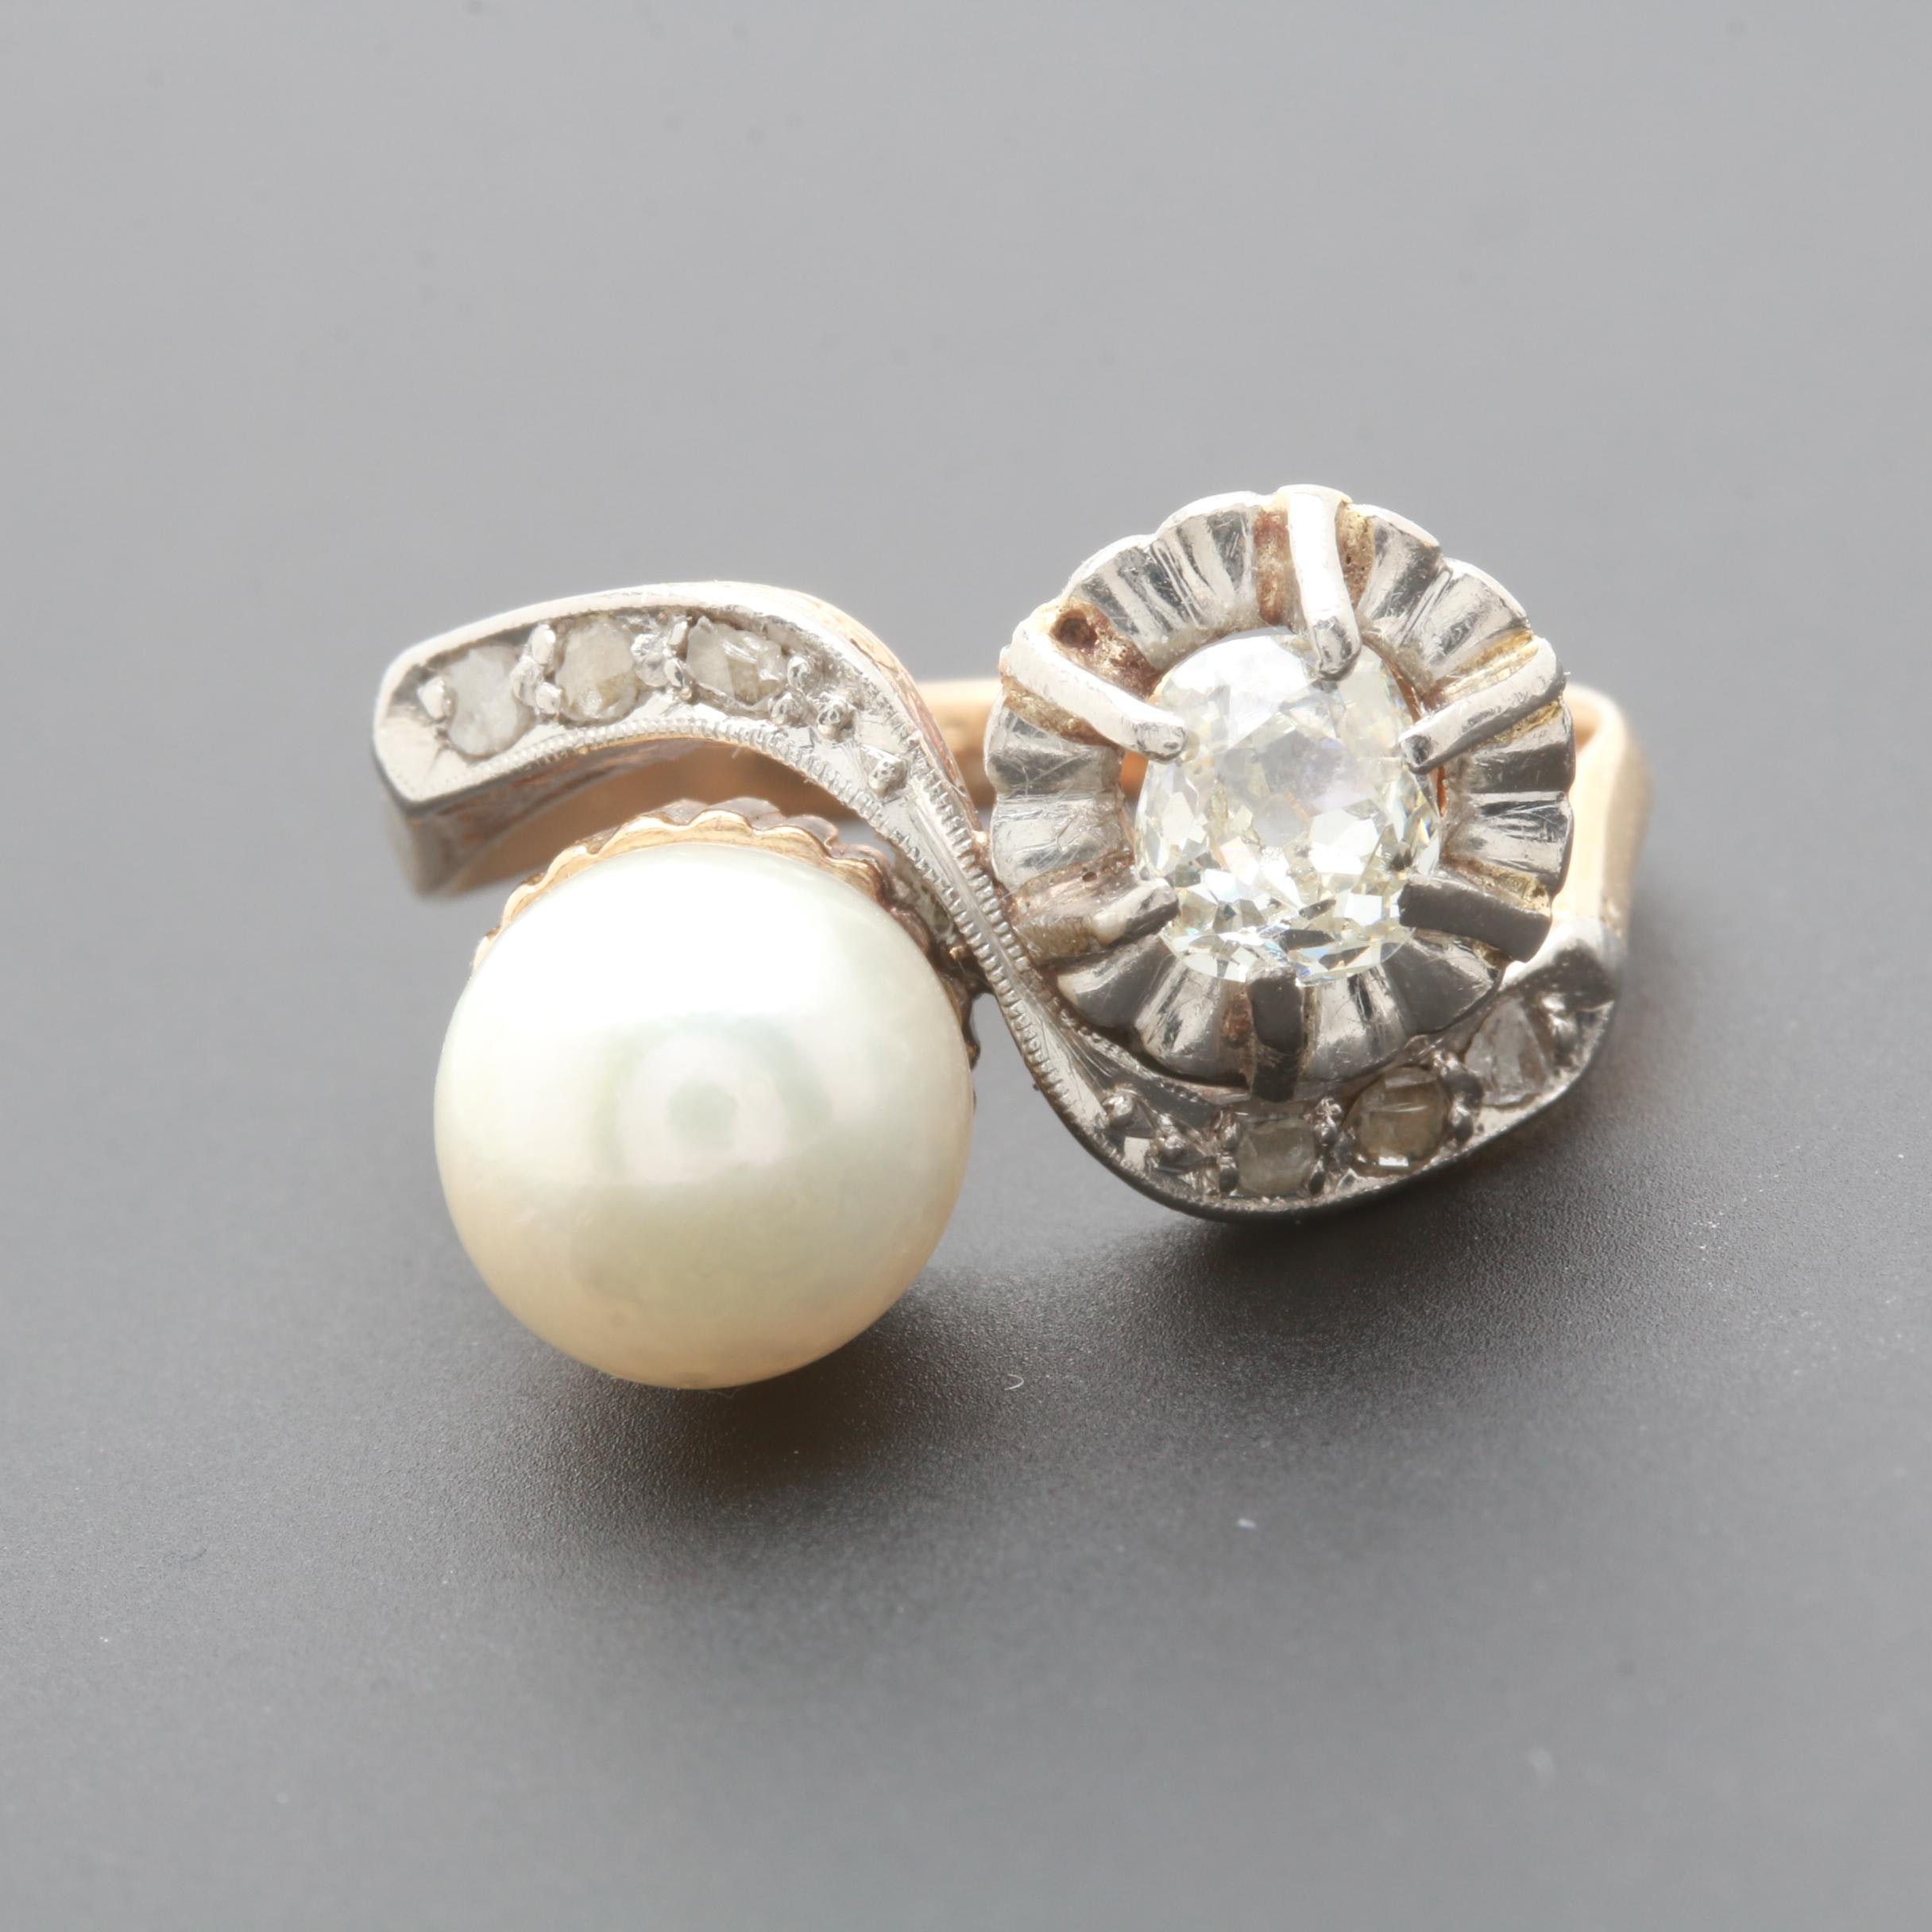 18K Yellow Gold Cultured Pearl and Diamond Ring with White Gold Accents